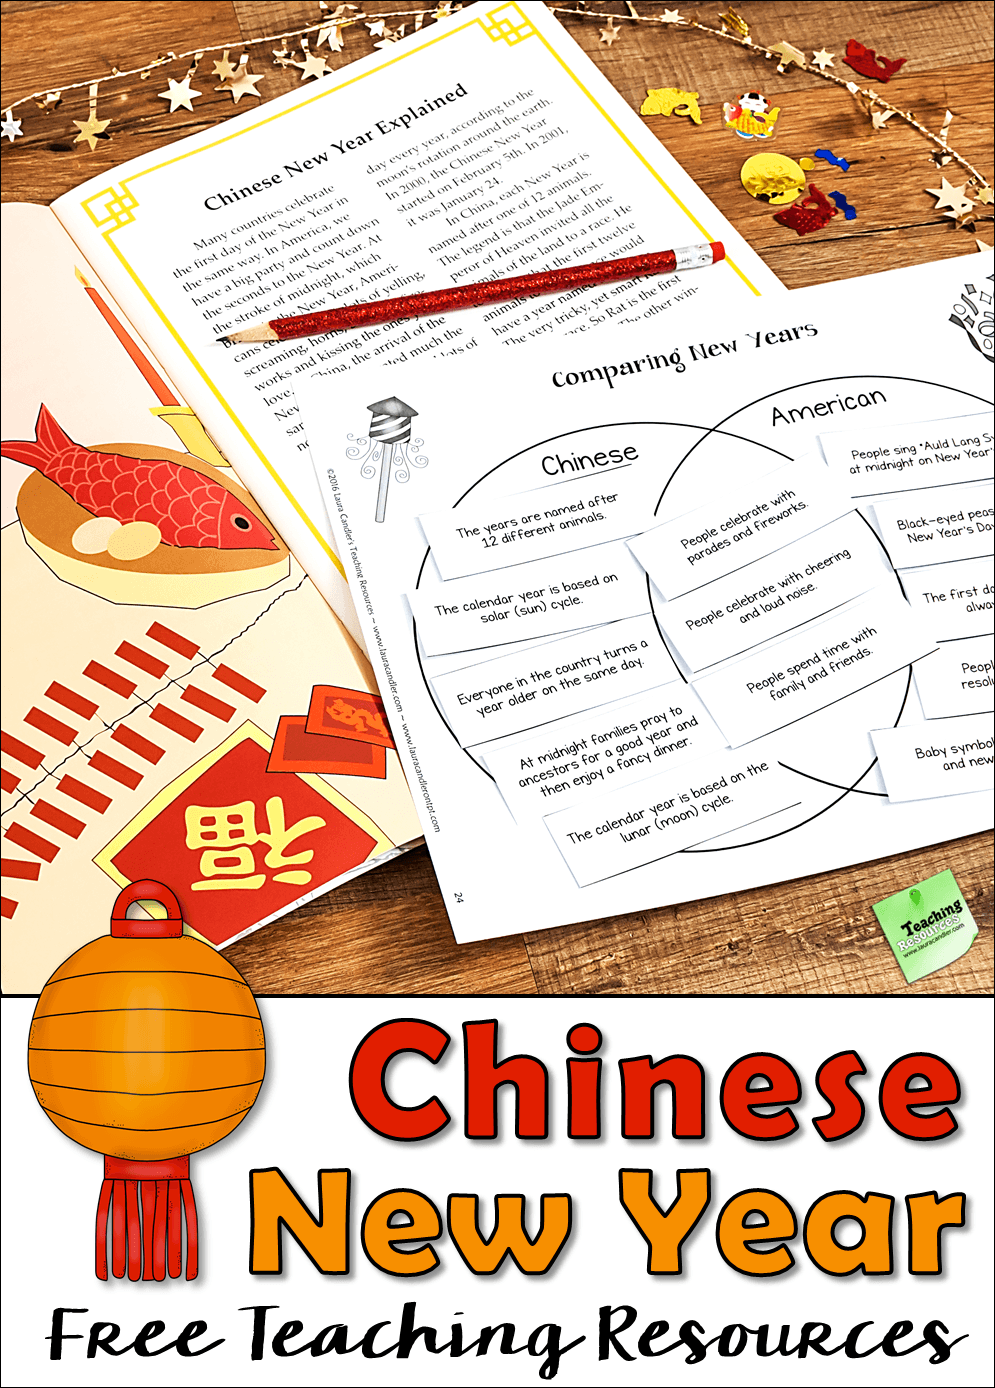 Free Chinese New Year Teaching Resources